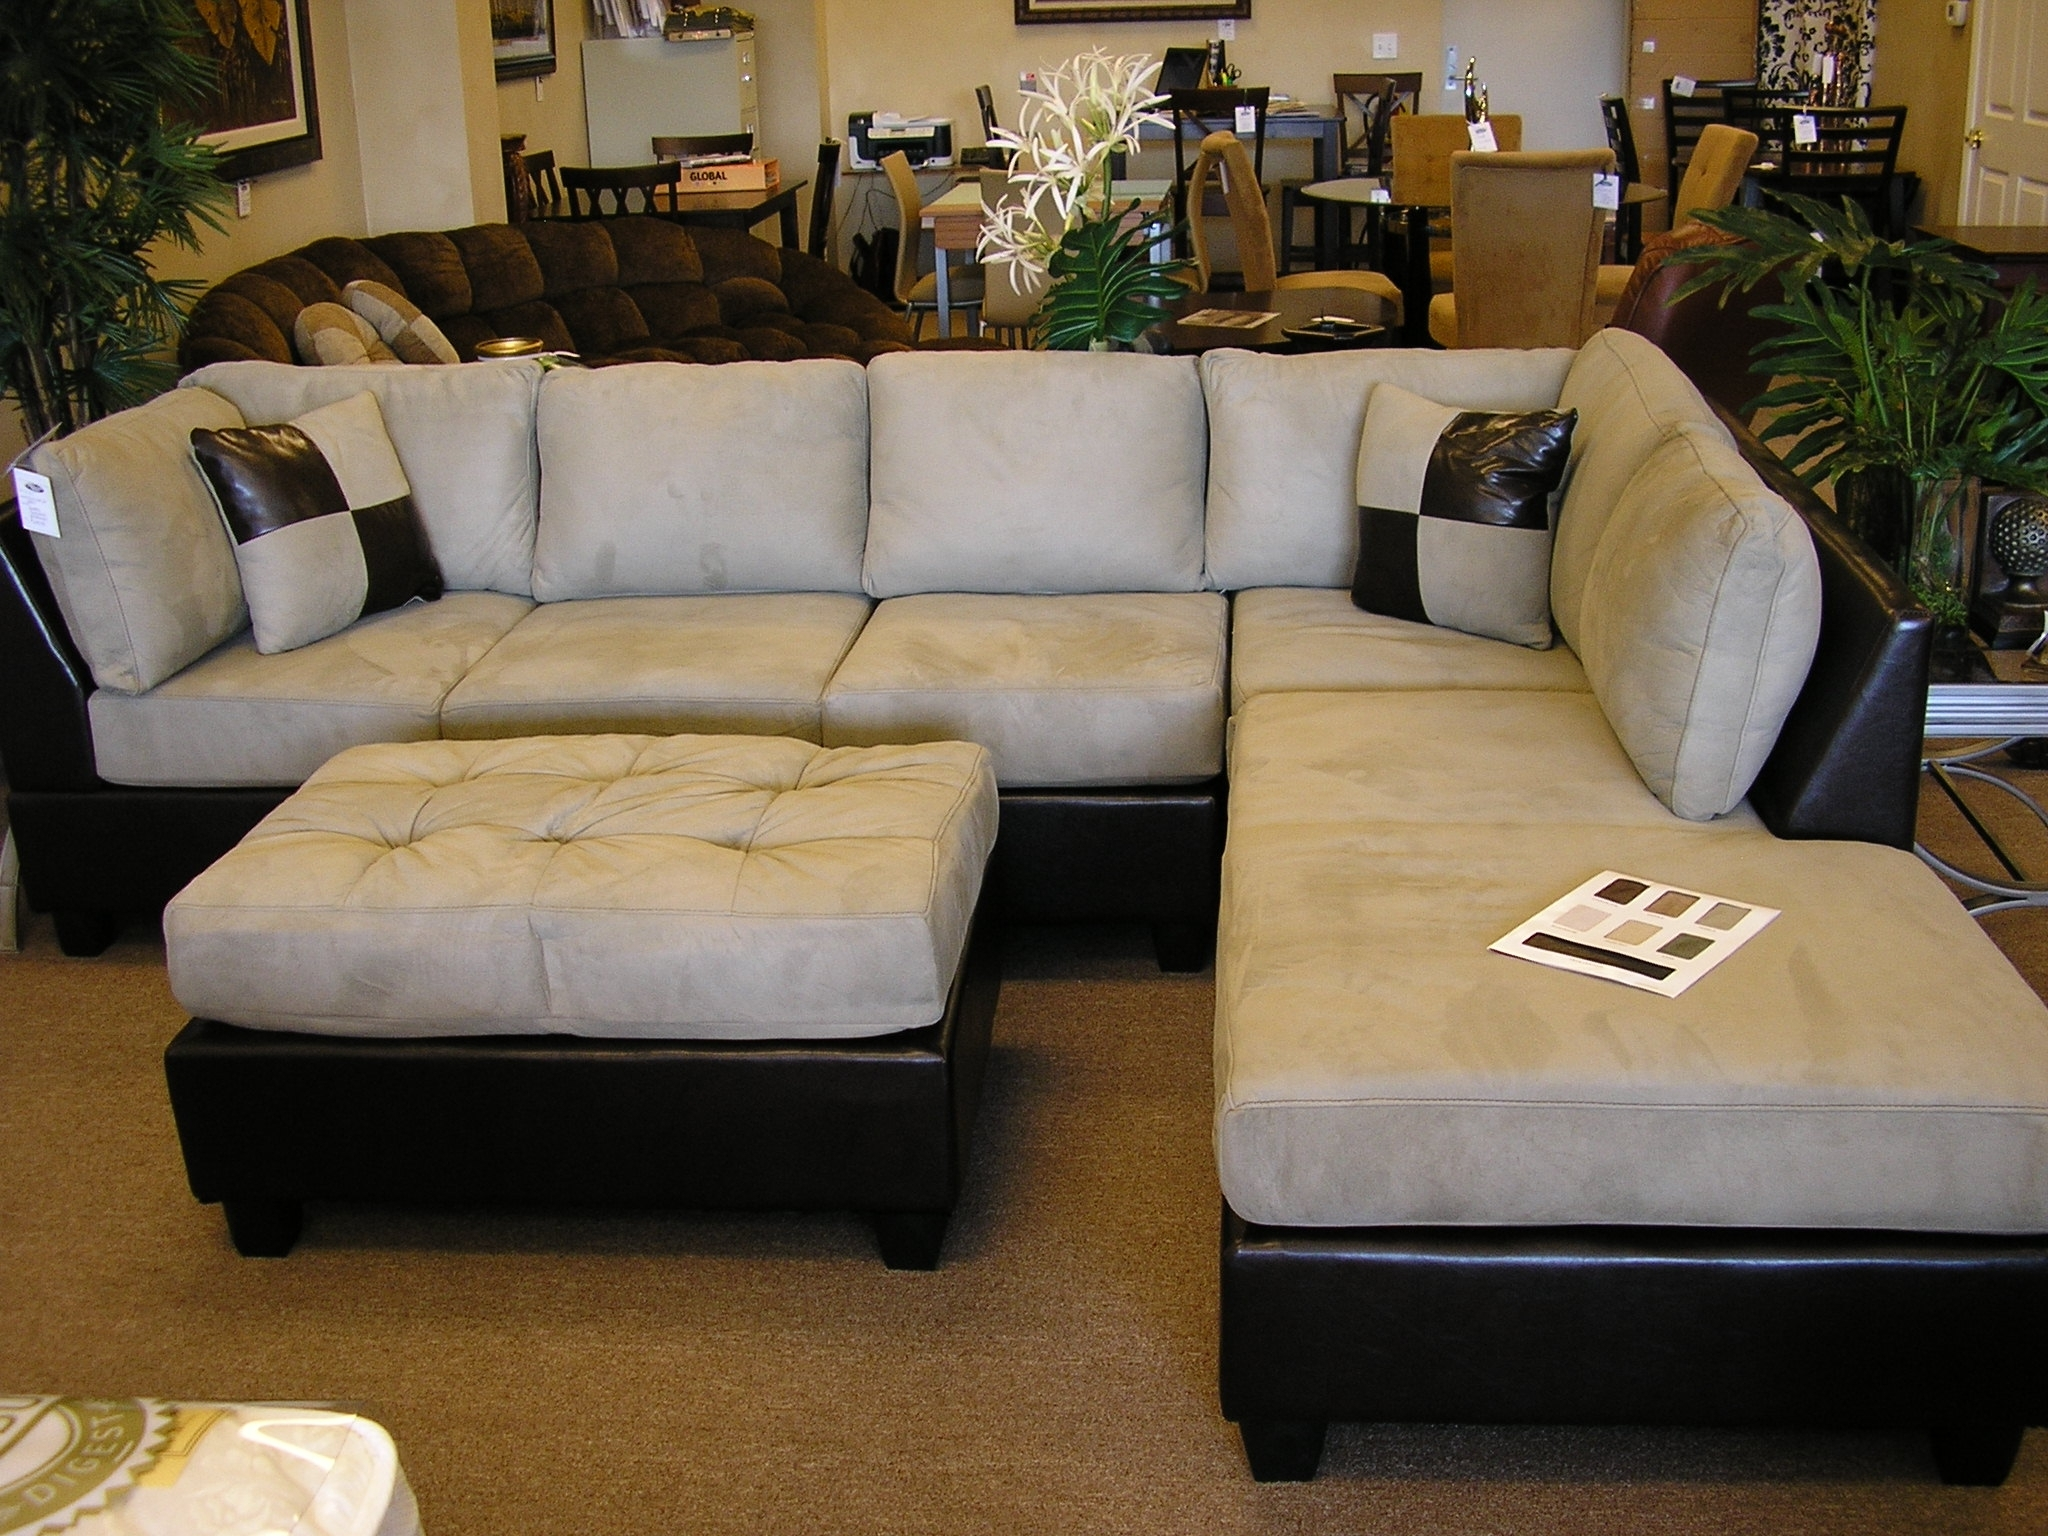 Uncategorized : Sectional Ottoman Set Ideas For Lovely Sofa 3 Throughout Sofas With Chaise And Ottoman (Photo 8 of 10)